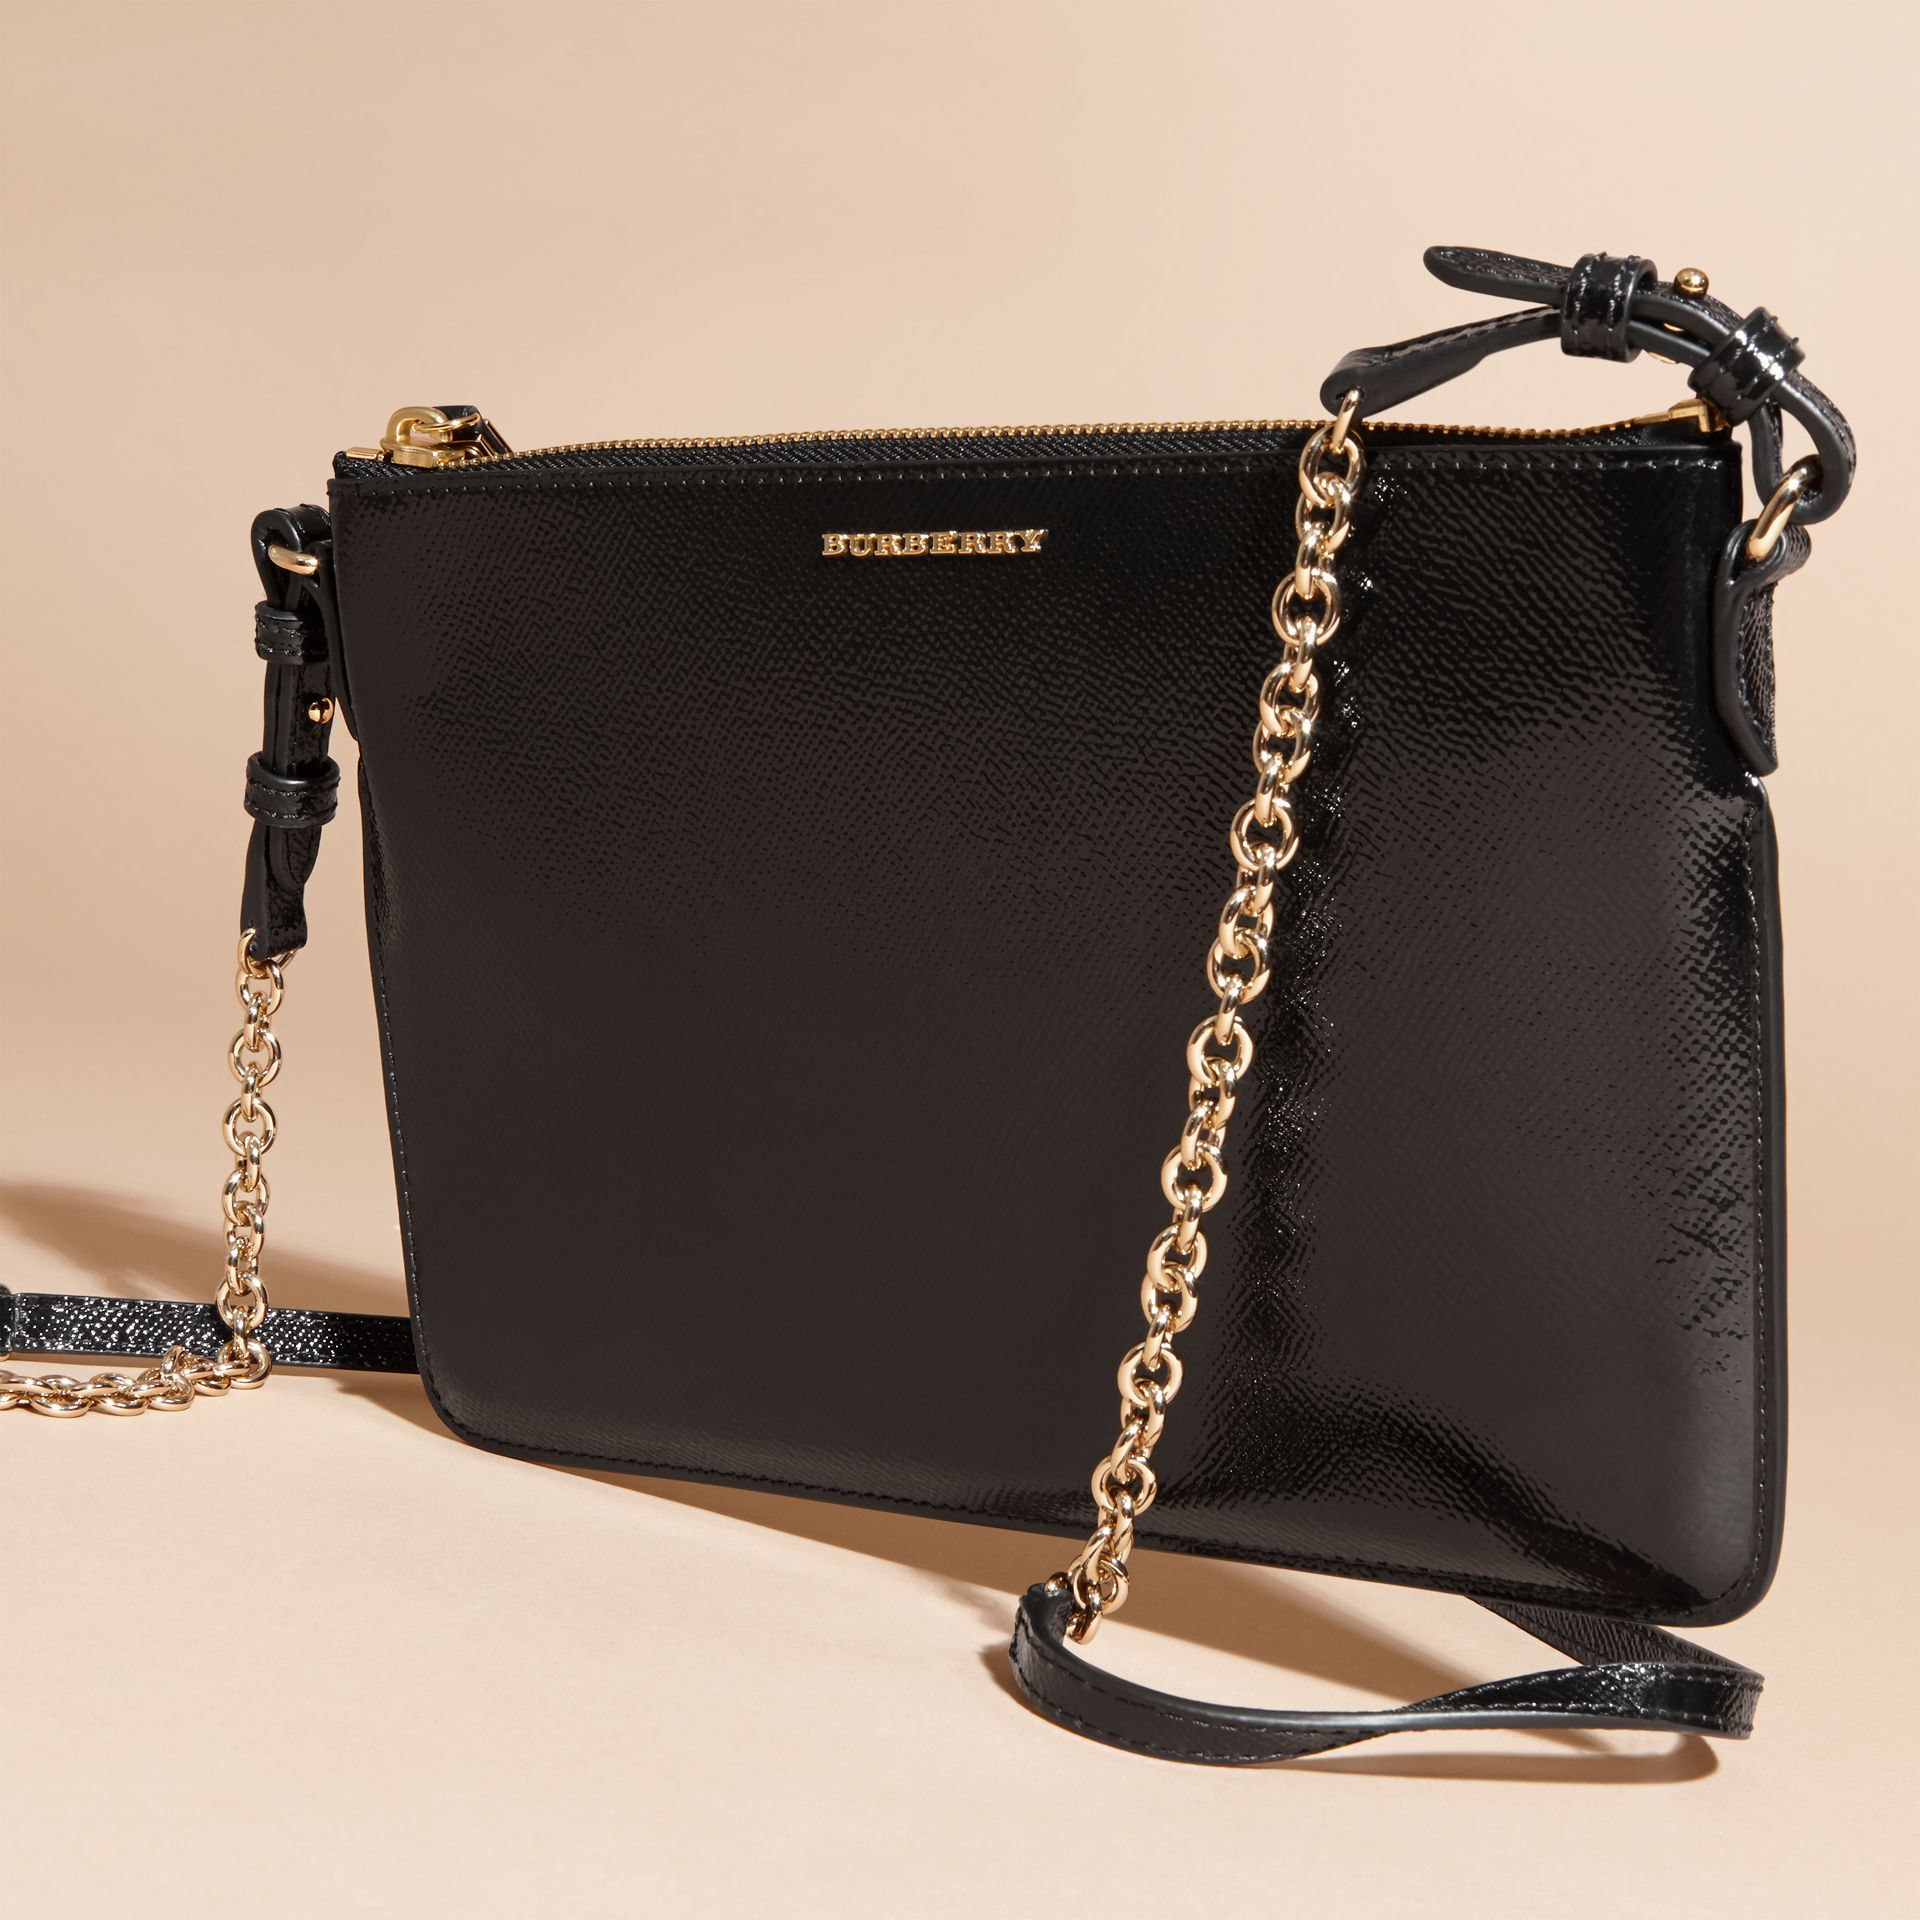 Patent London Leather Clutch Bag in Black - gallery image 8